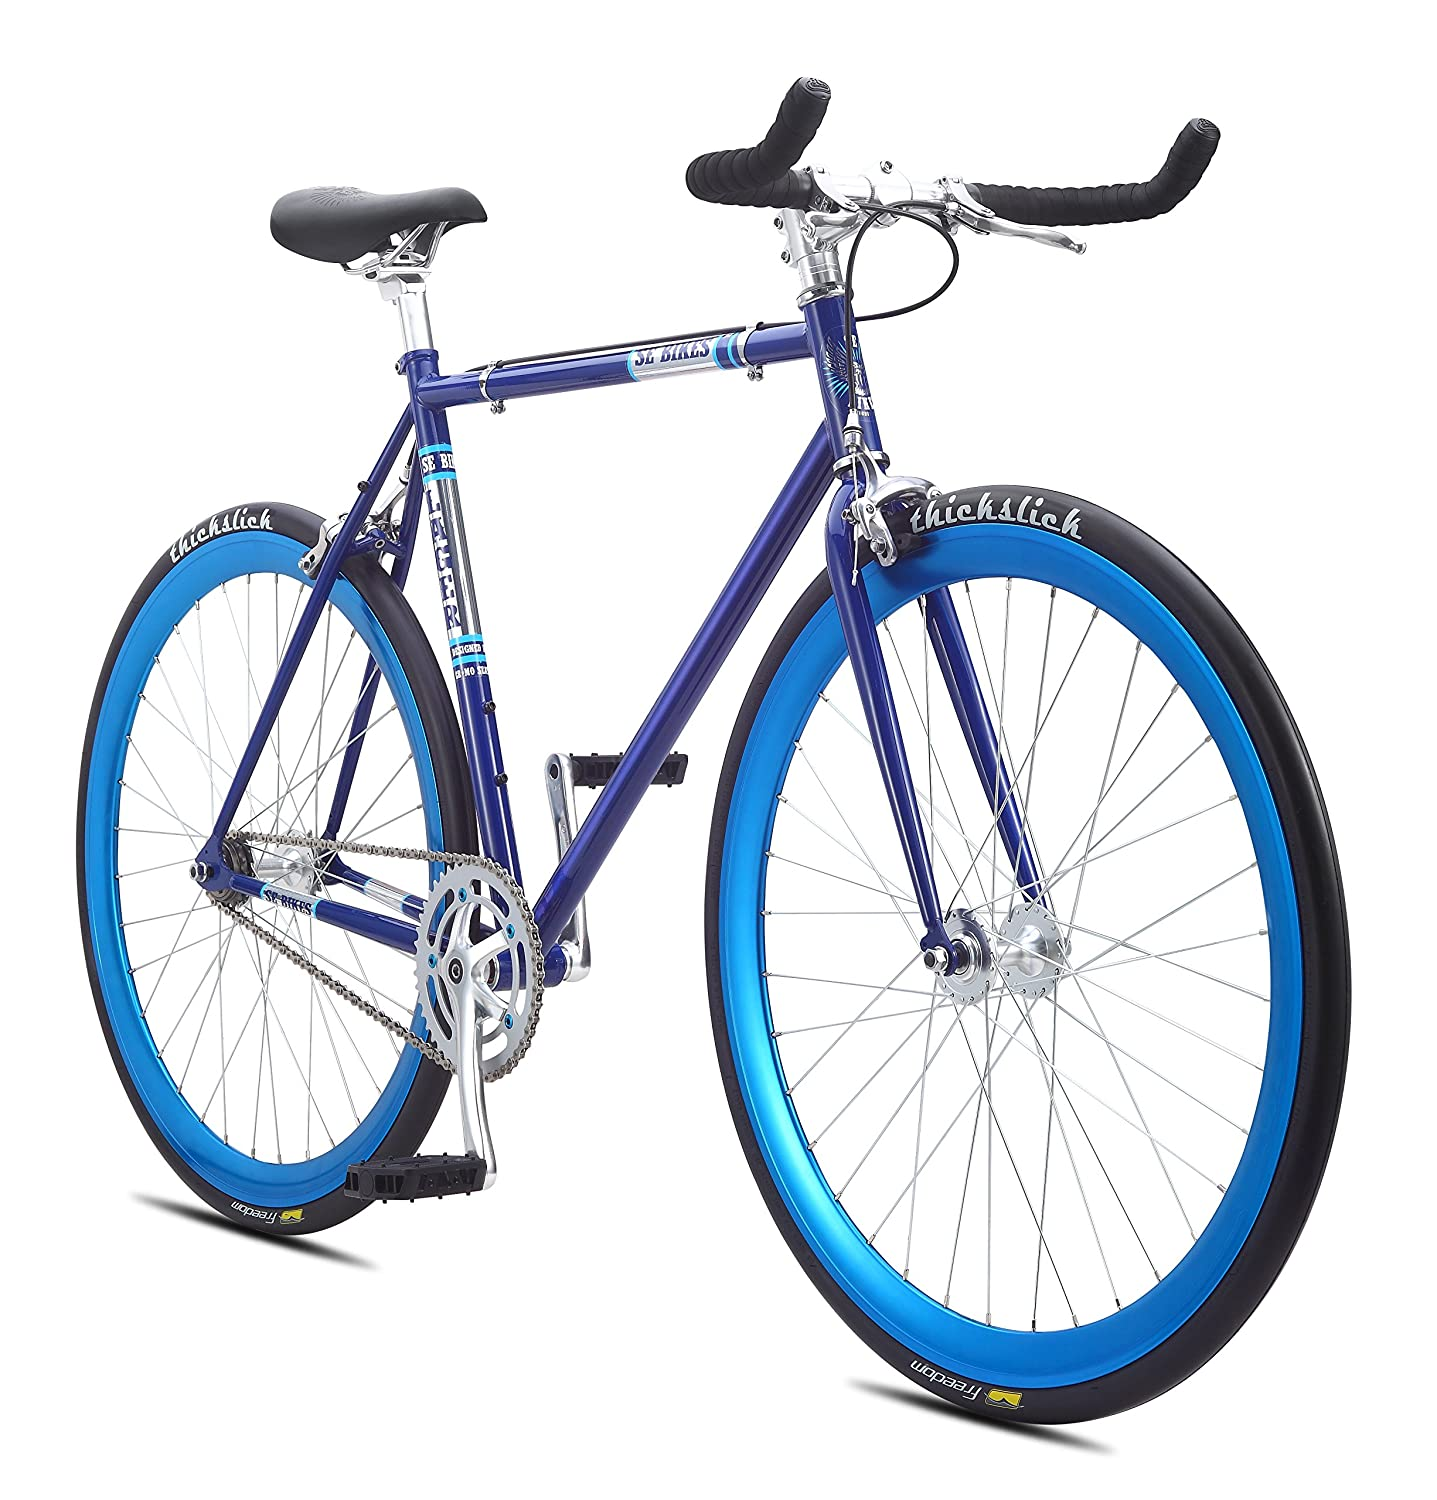 image of blue se lager bike